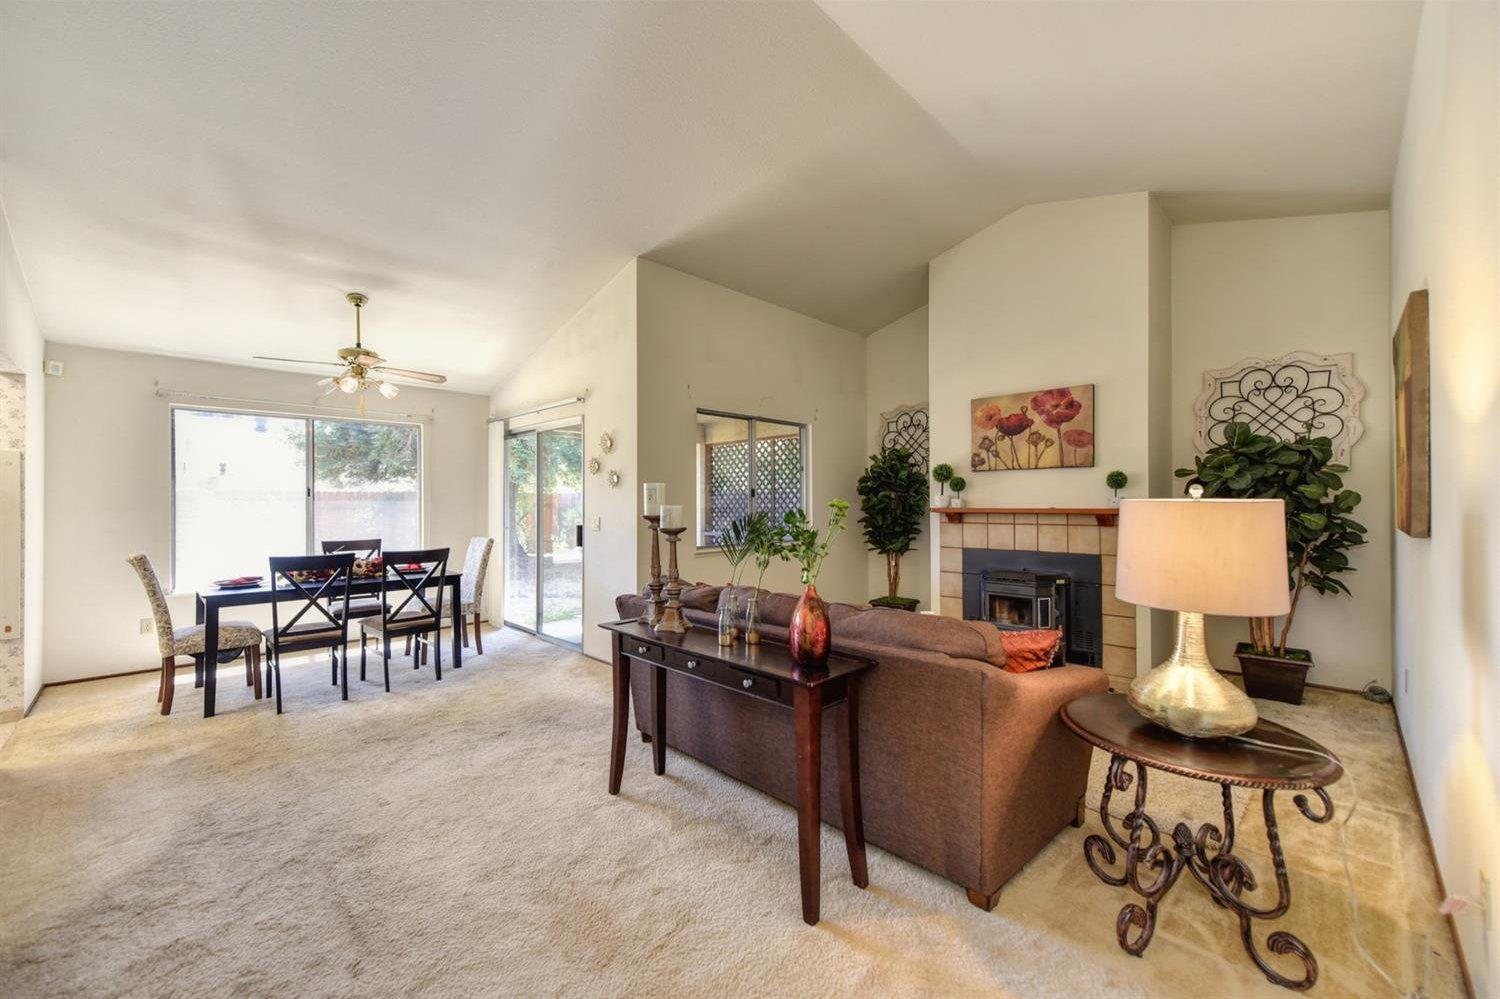 Home for sale in Citrus Heights. Realtor in Citrus Heights California.